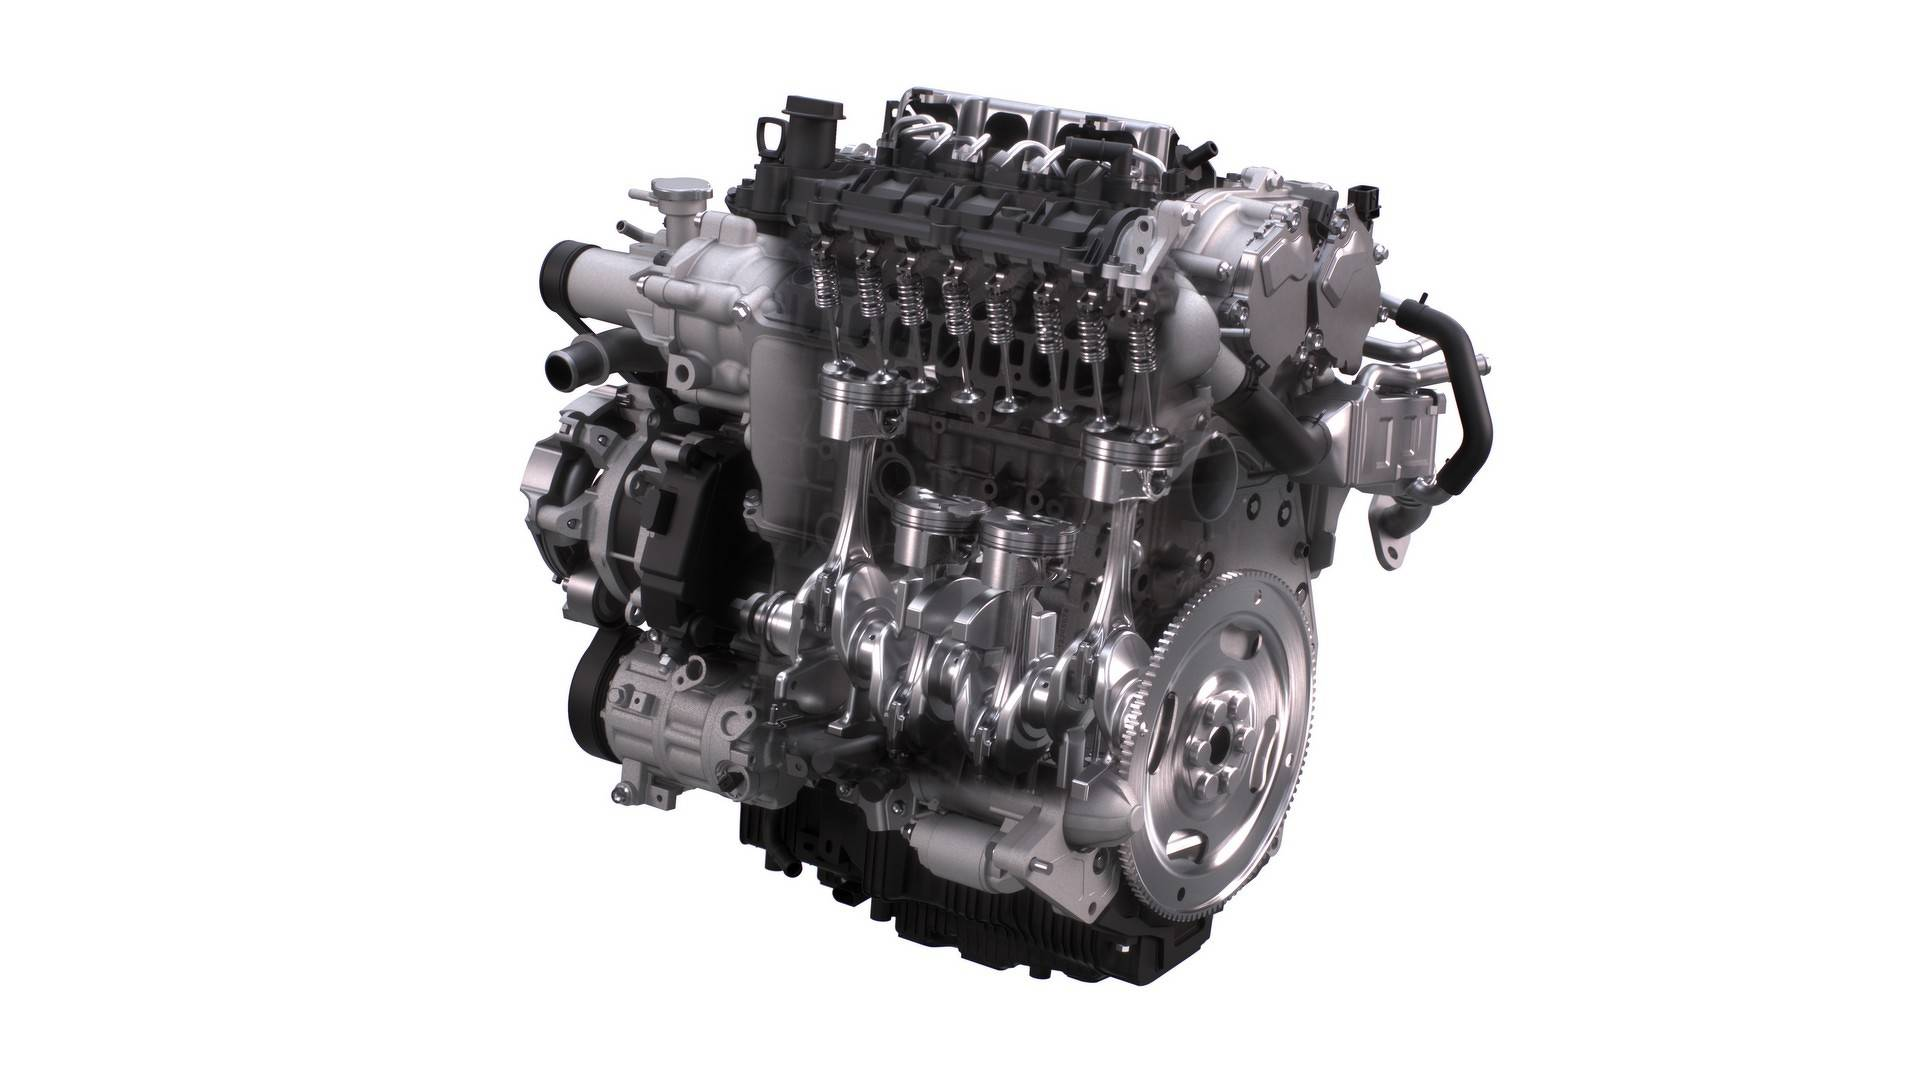 Skyactiv Engine To Give Internal Combustion Longer Lease Of Life on Internal Combustion Engine Design